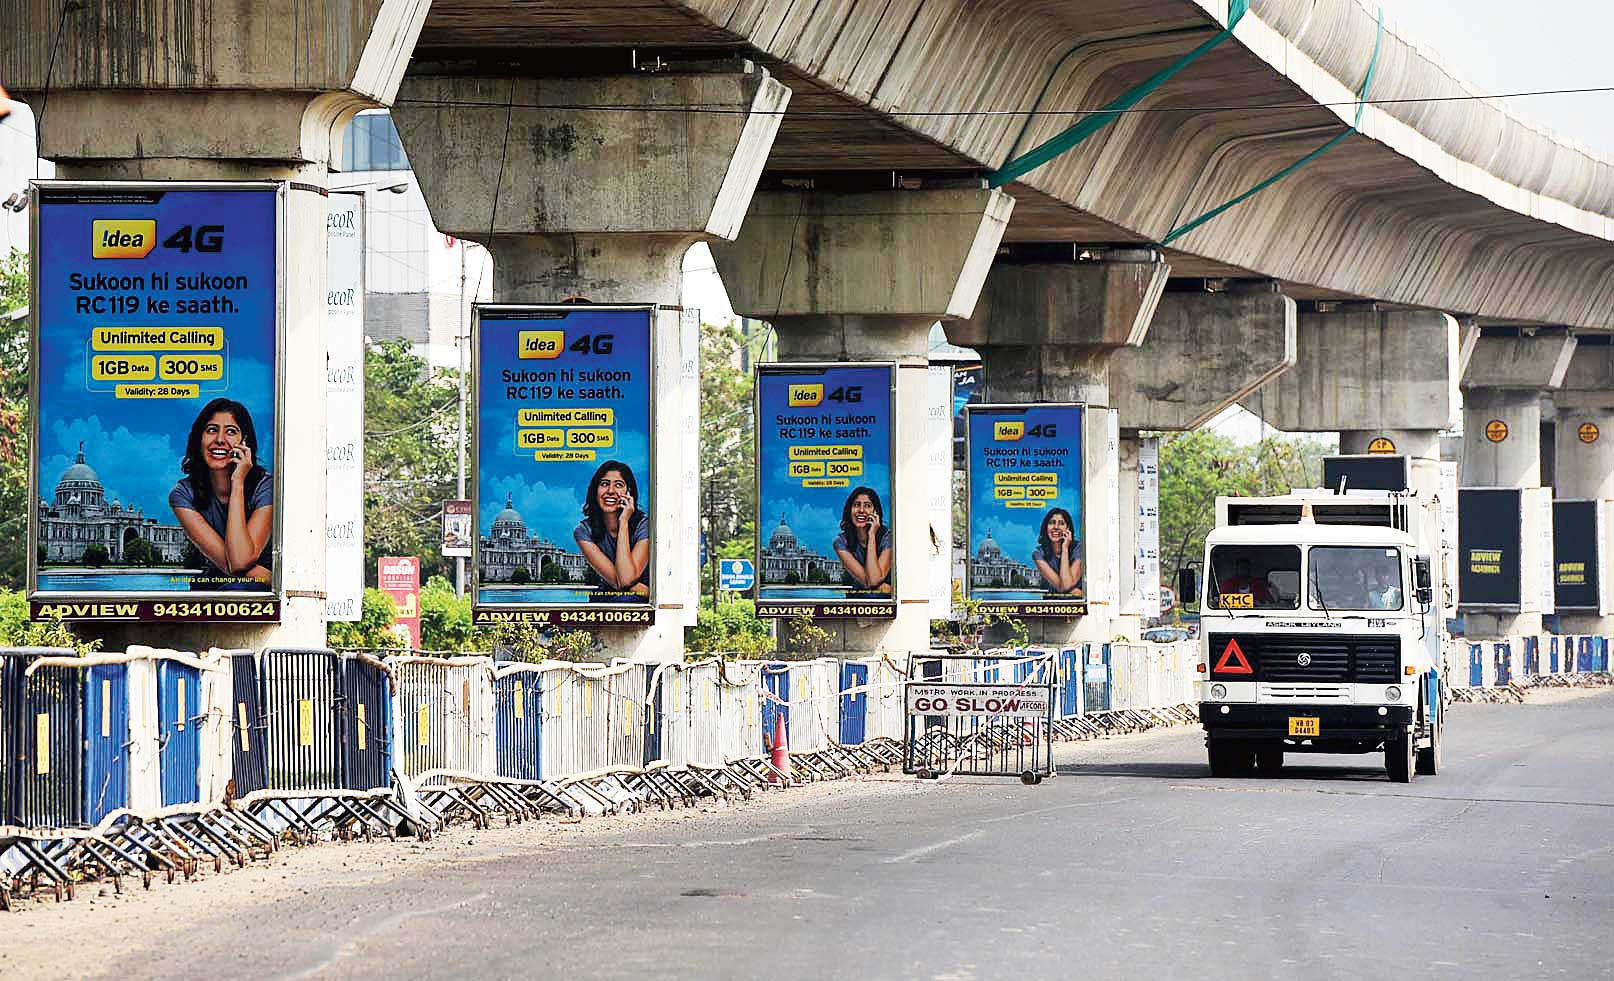 Advertisements on pillars of the New-Garia Metro on the Bypass.